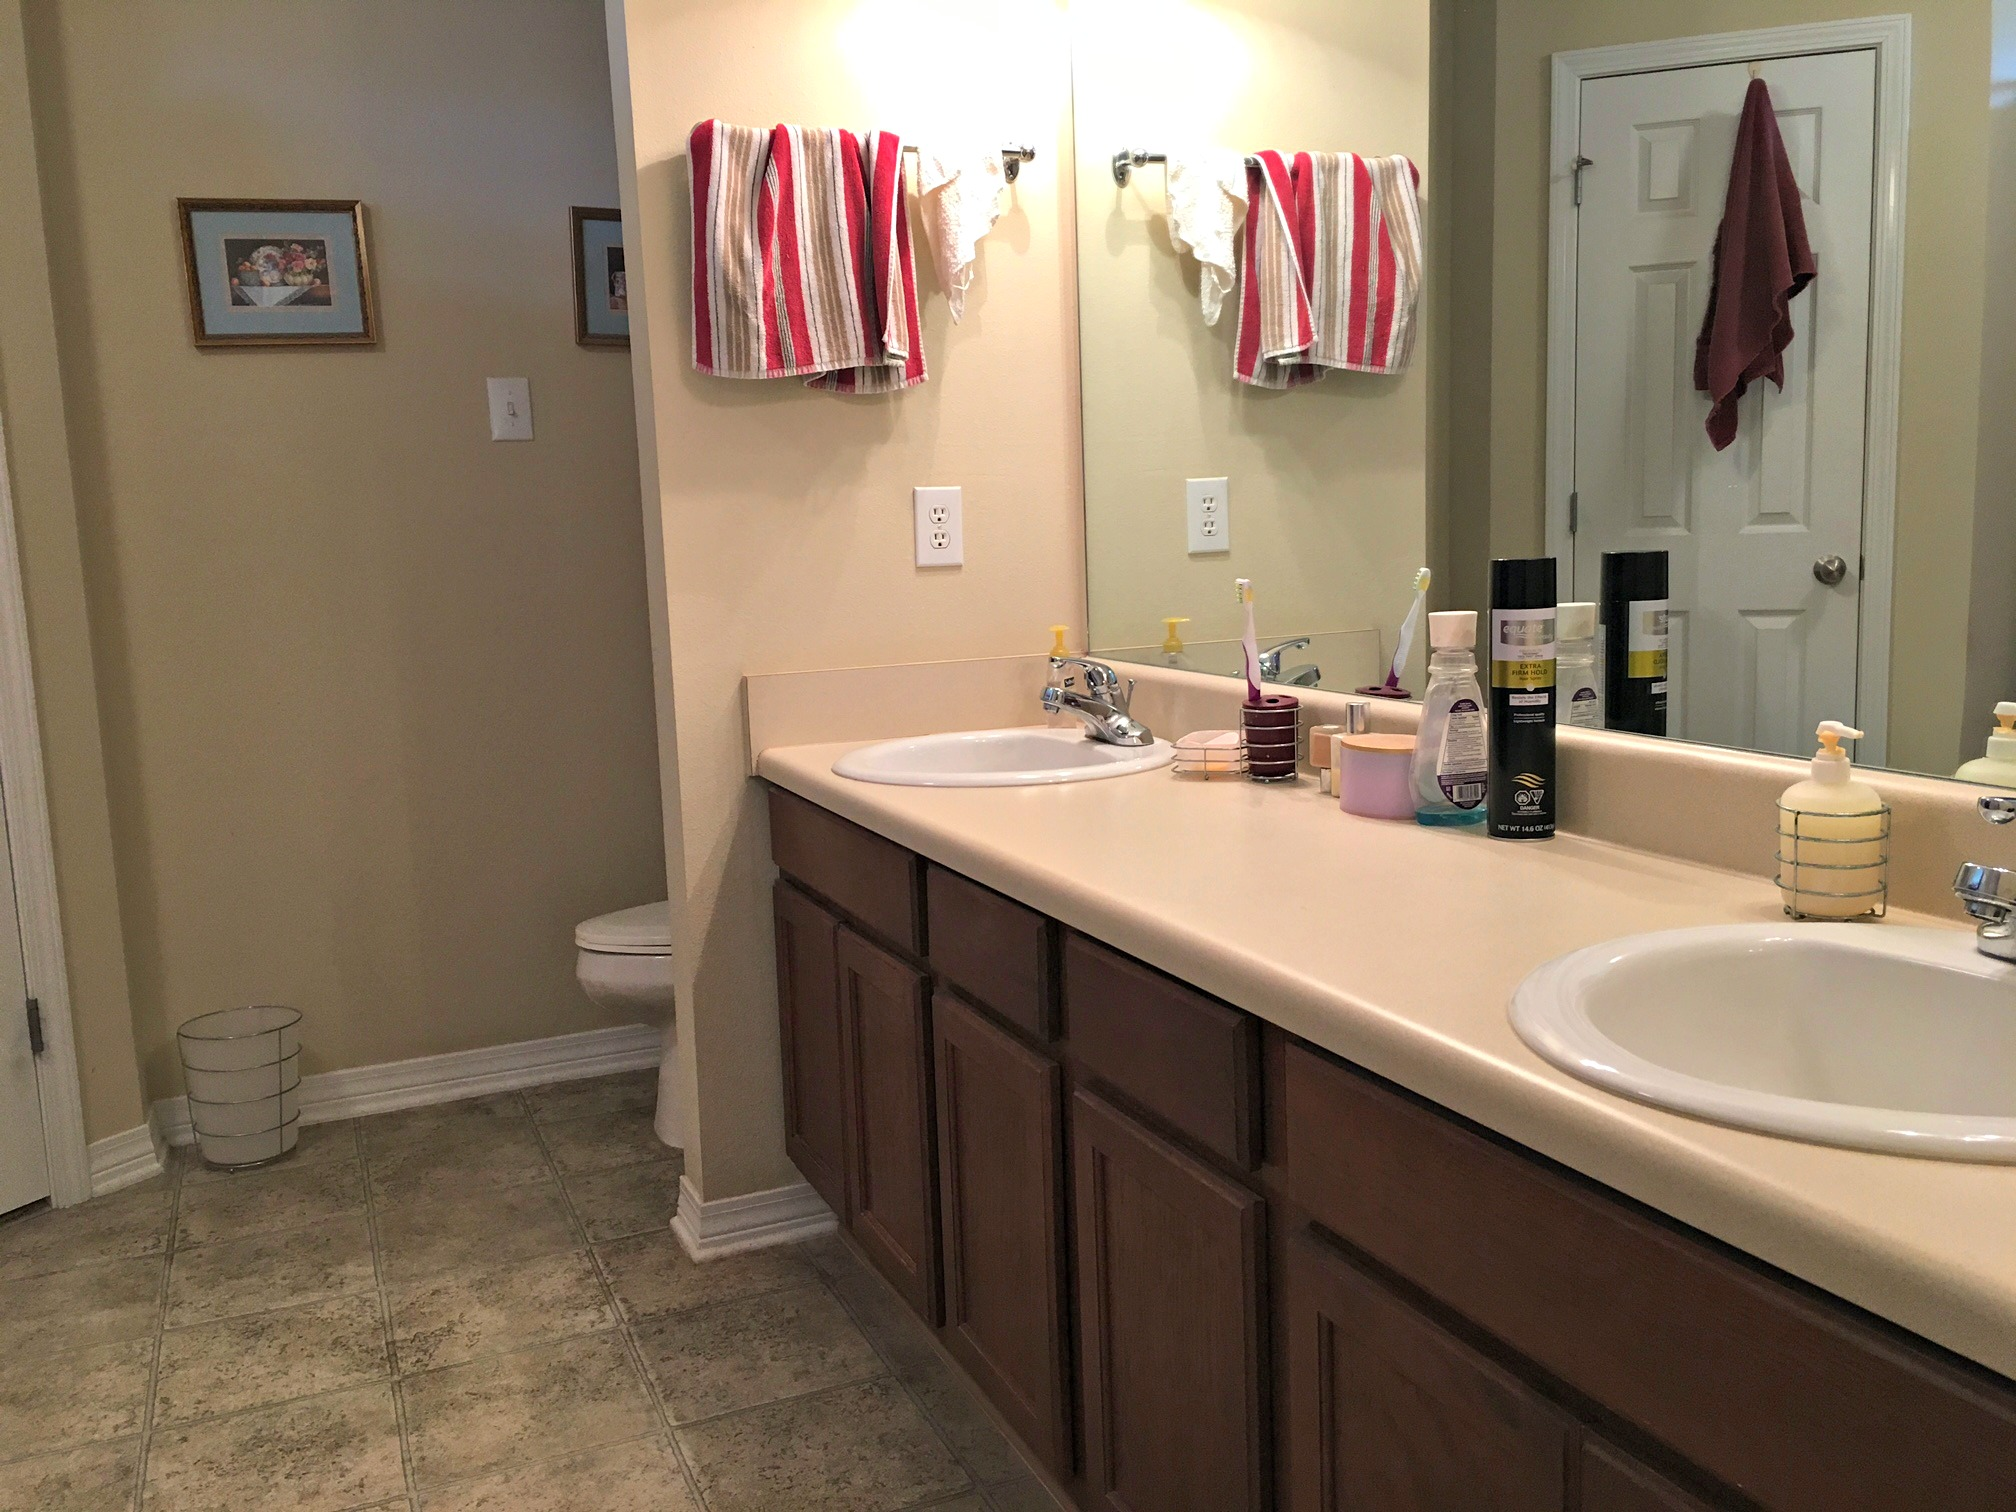 sink atlanta bathroom granite for houzz sinks makeup top two design of full common wayfair rustic undermount auburn home double allen with cabinets wood size area solid foremost vanities eastcott dual vanity wall oak roth